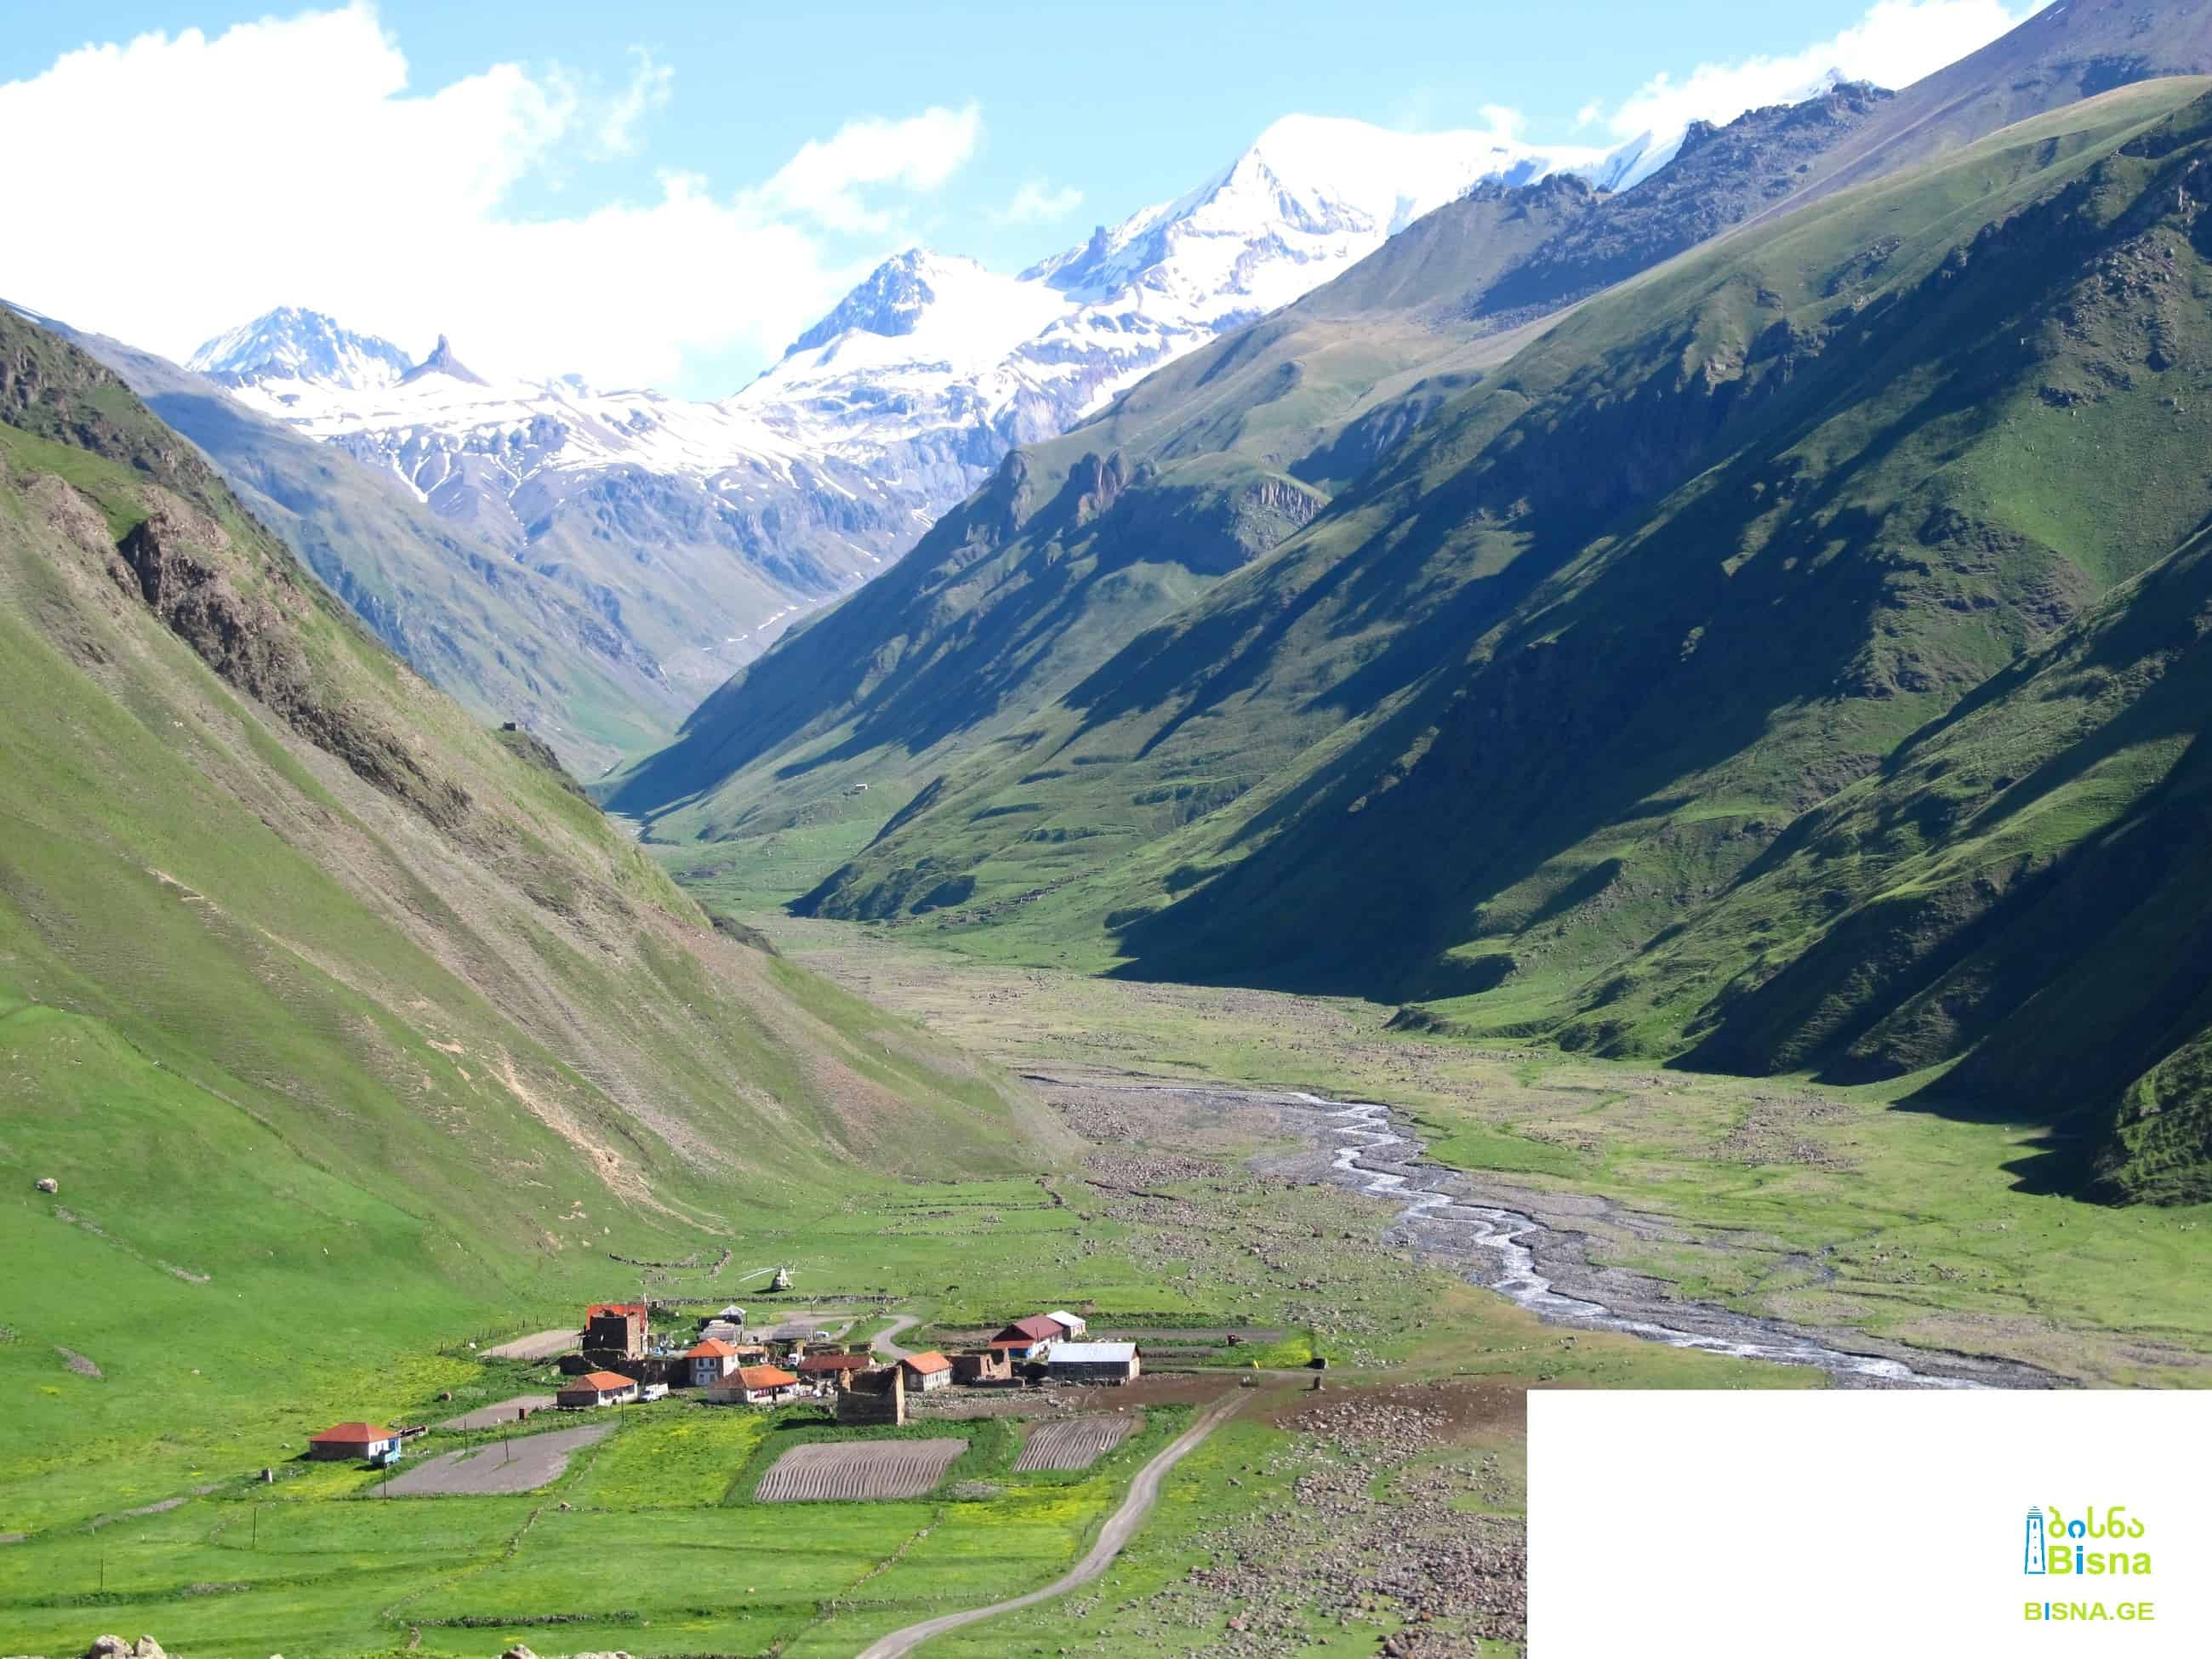 Zemo Okrokhana village, Mna Valley and Mna Fang seen from Truso Valley